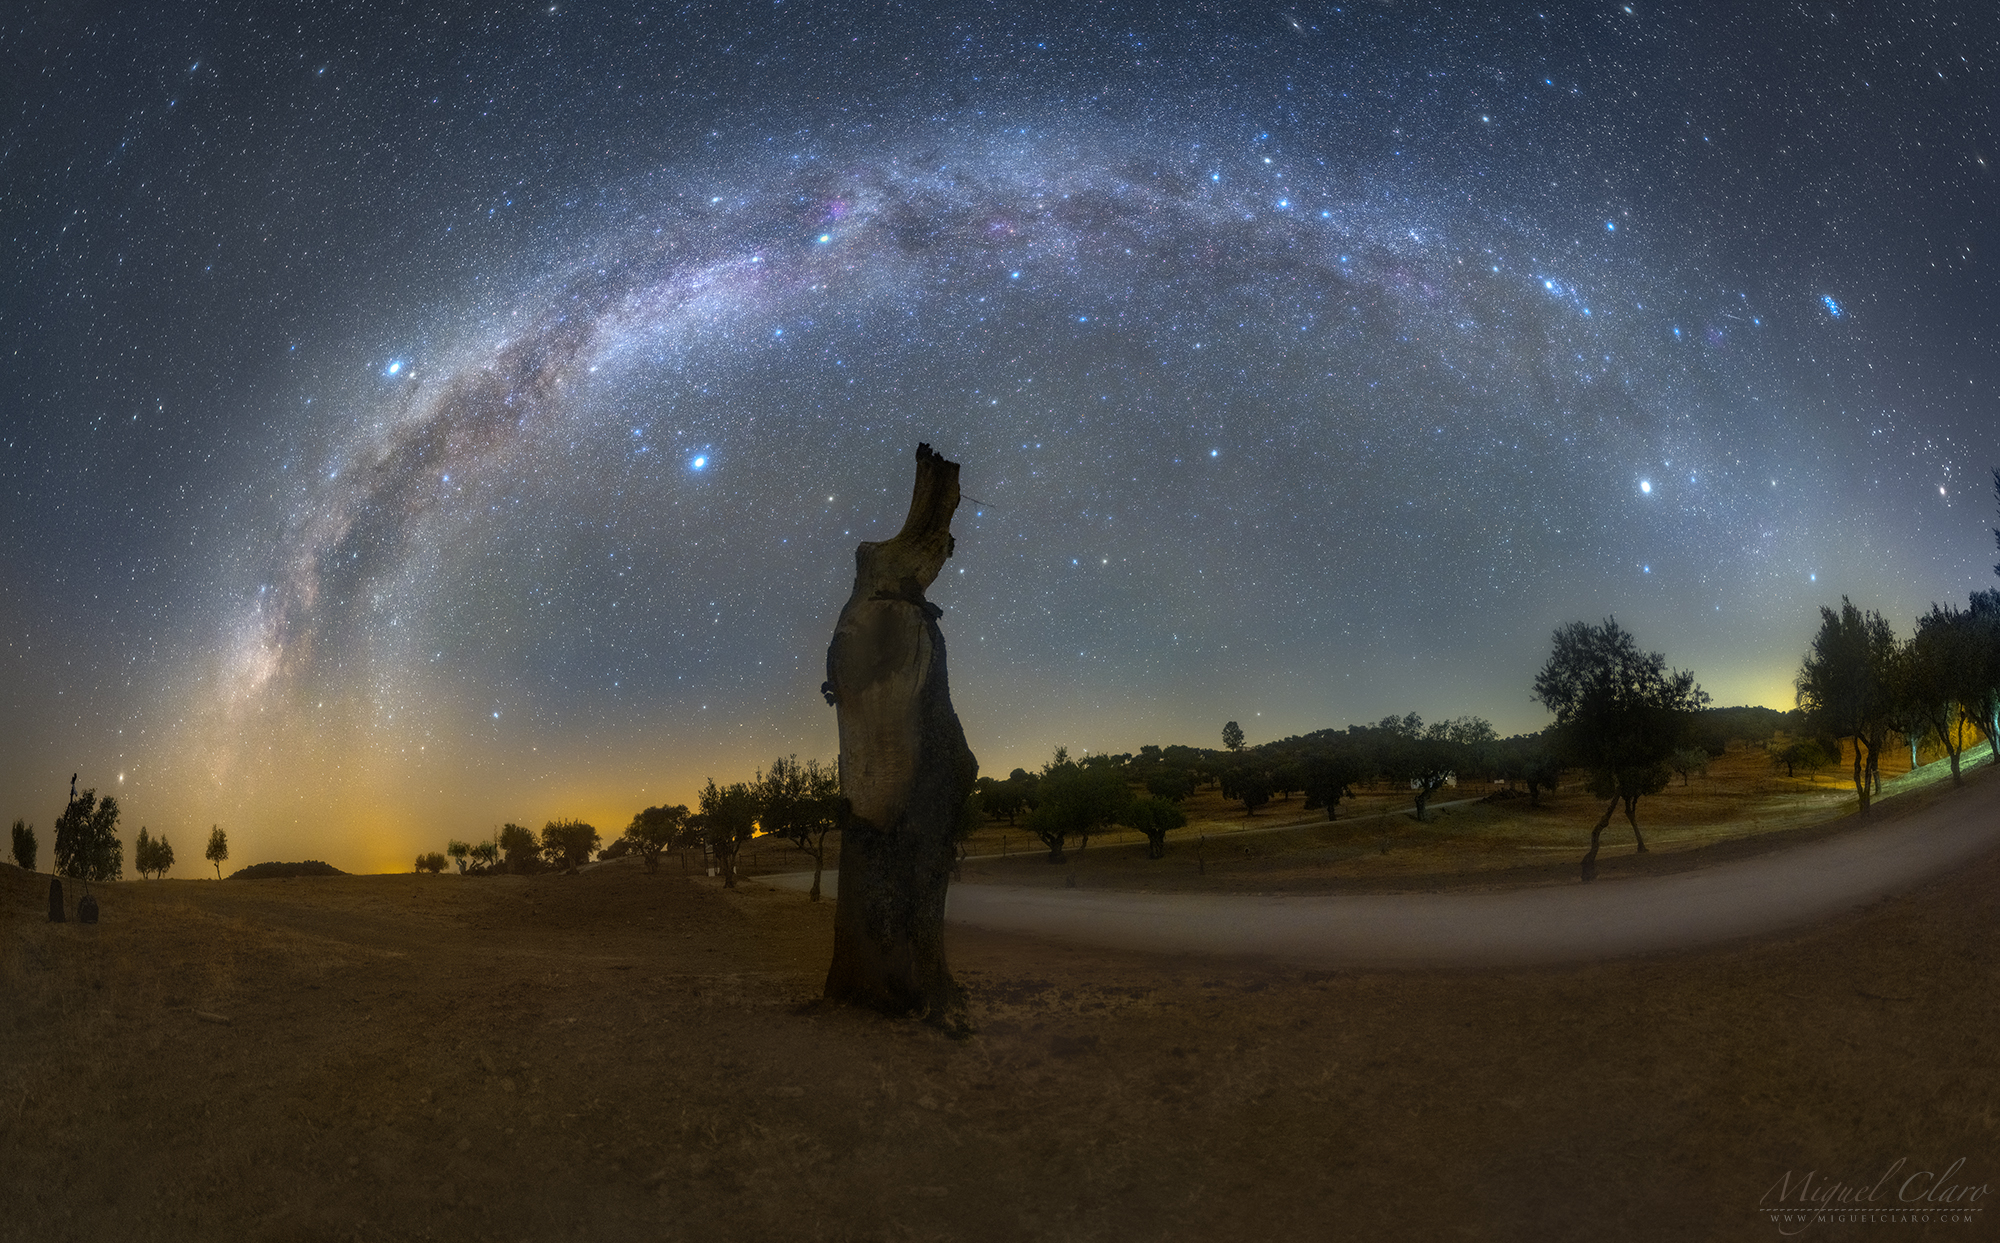 Milky Way's seasonal transition captured in gorgeous night sky ...